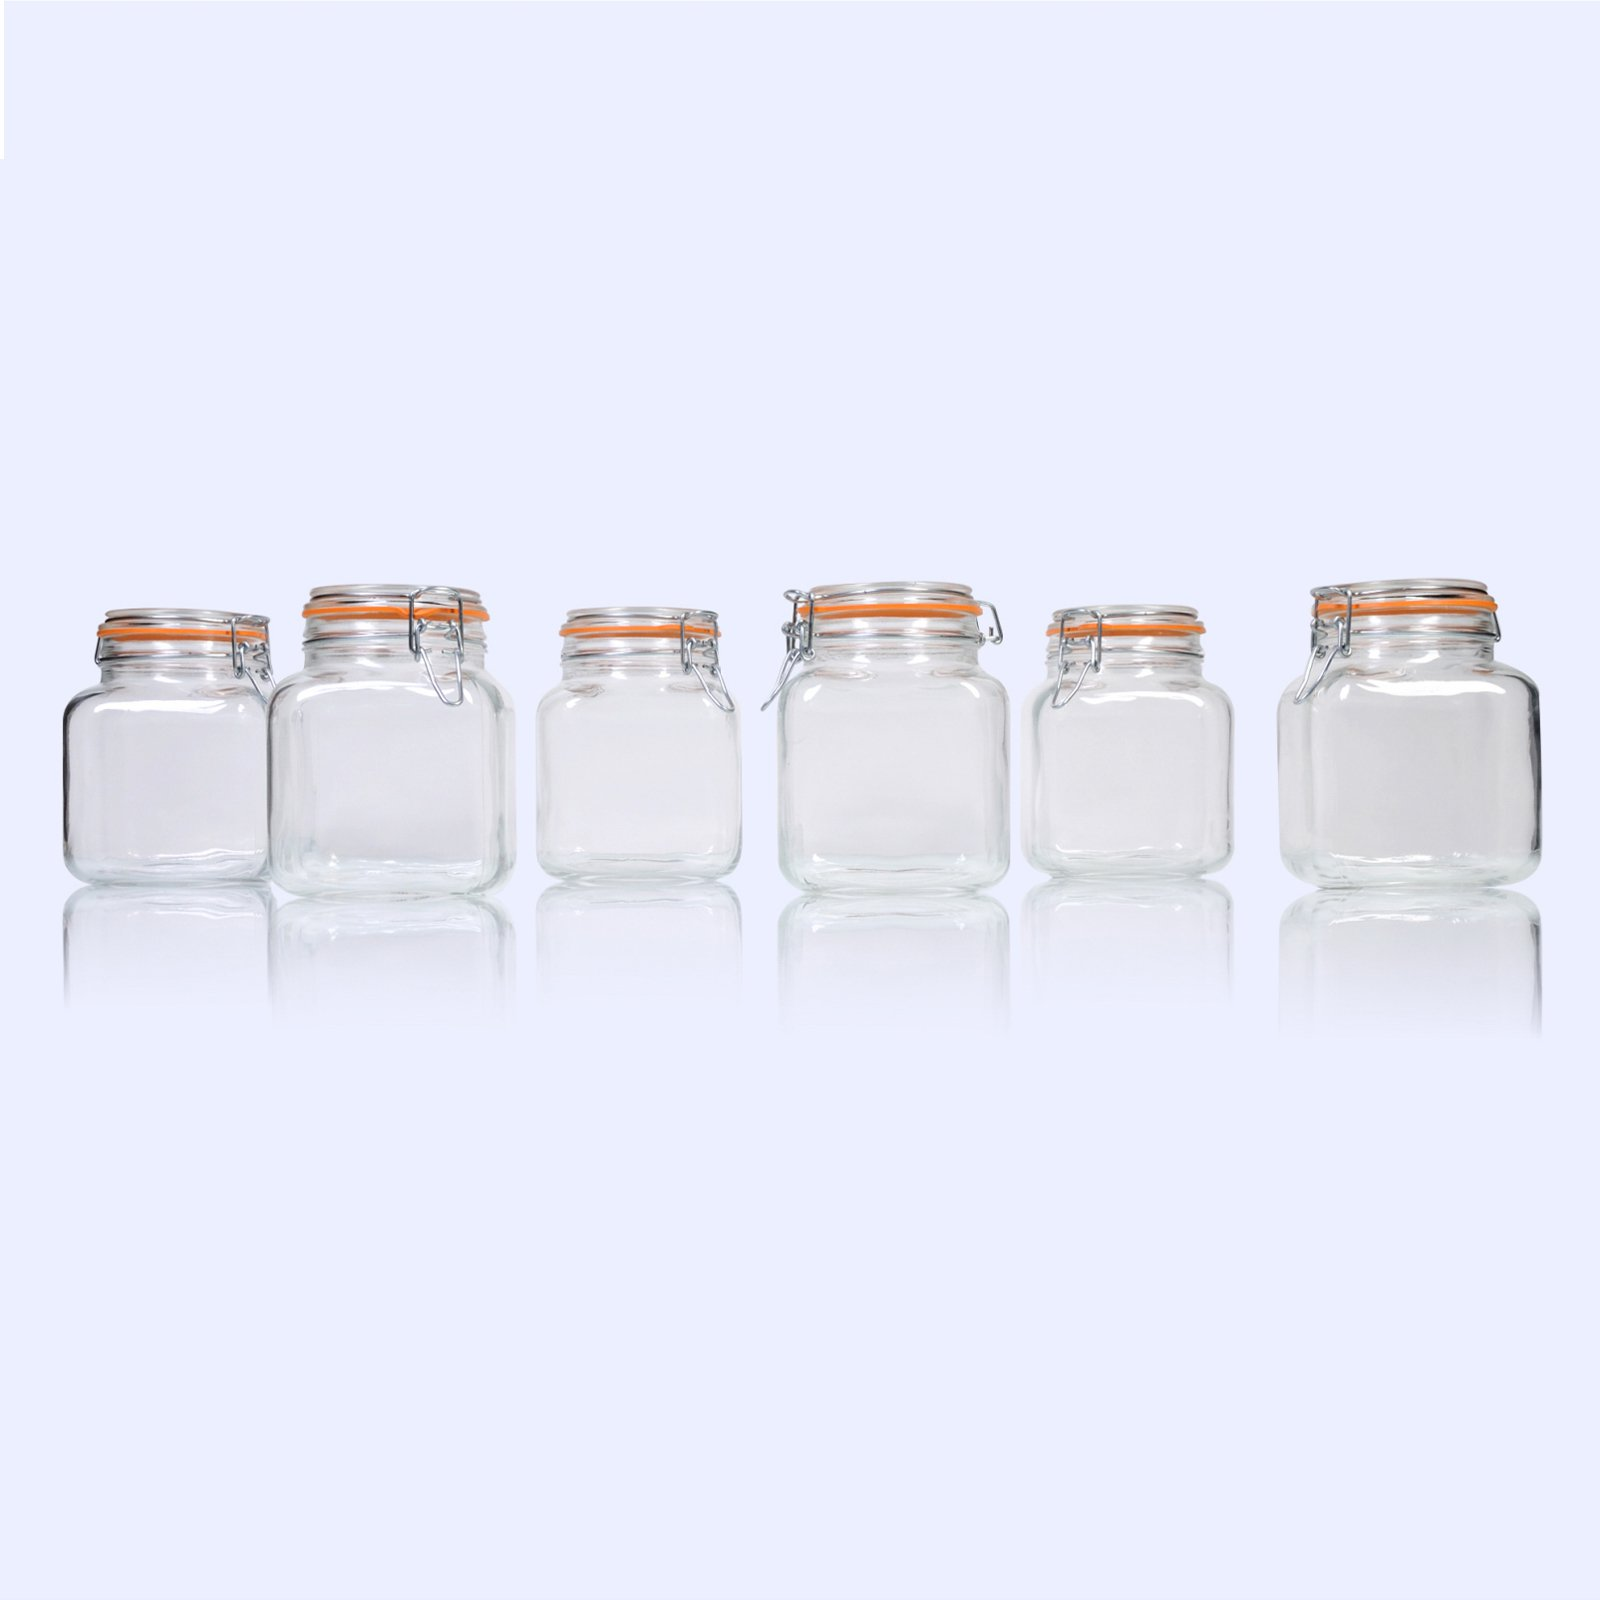 Global Amici Borgonovo Hermetic Jar - Set of 6